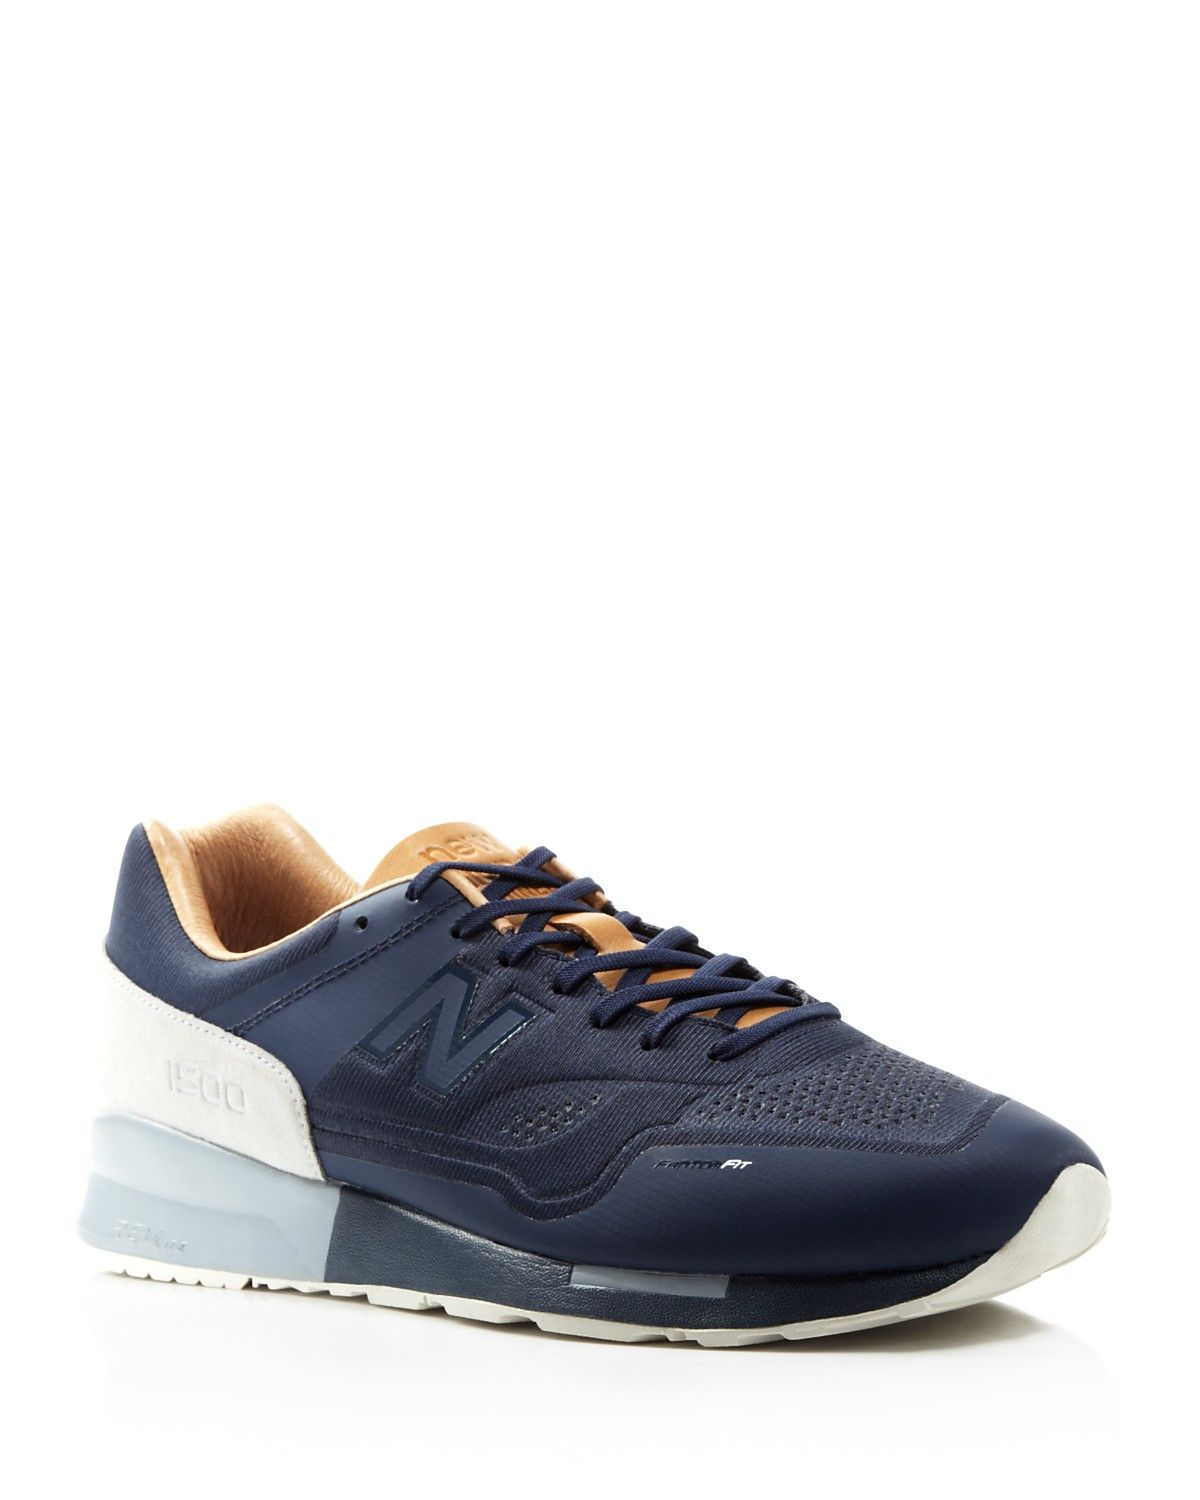 sale retailer 643c2 f68ad New Balance Lifestyle Re-Engineered 1500 Sneakers ...